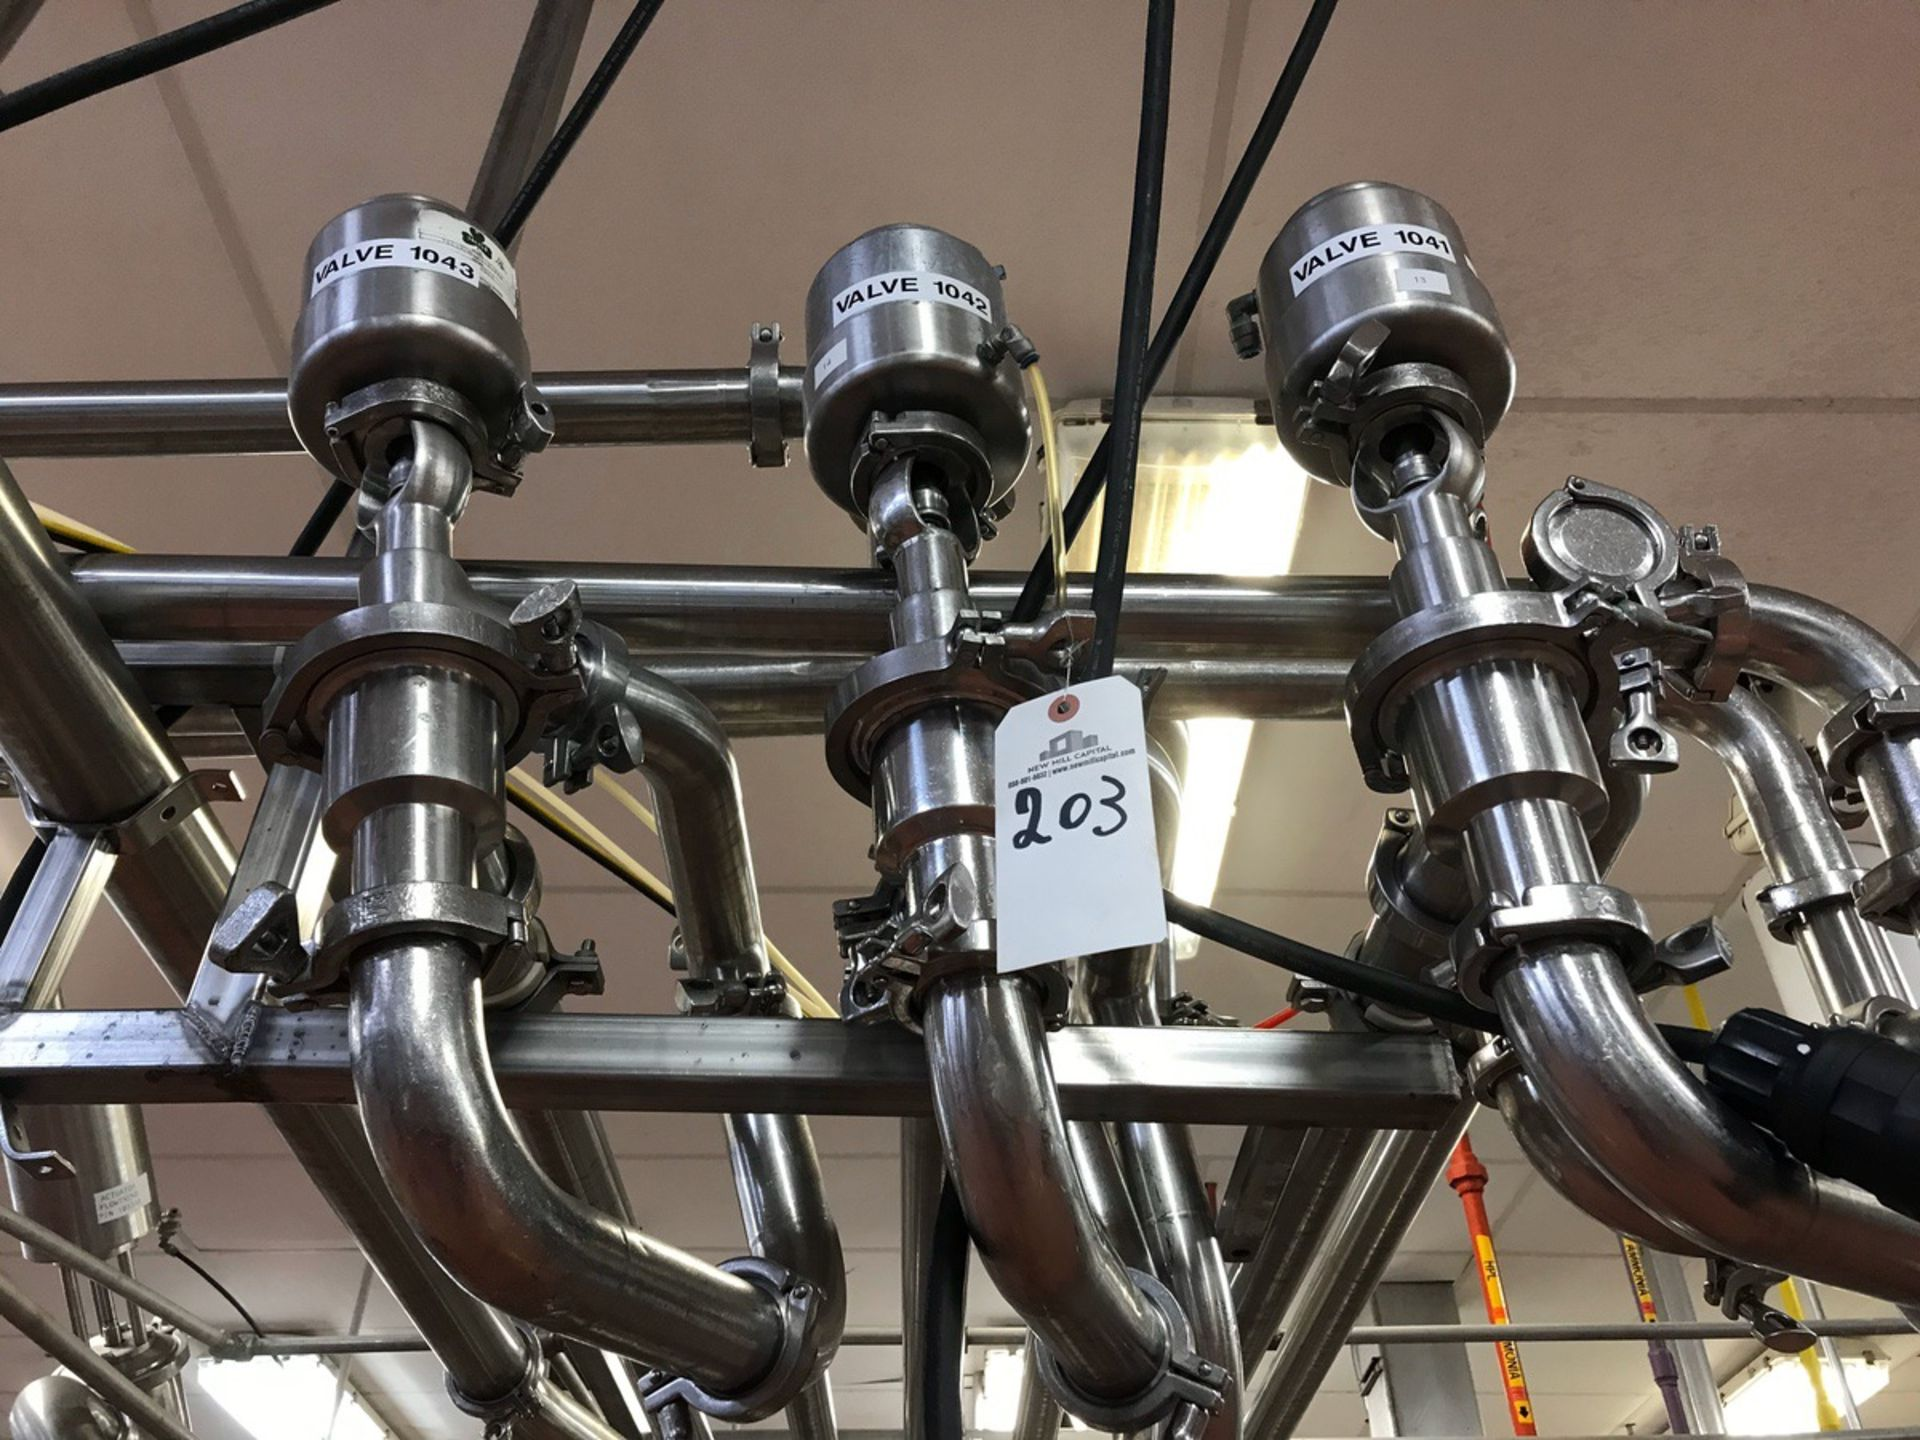 Lot 203 - (3) Tri-Cover Air Valves, 2in   Rig Fee: $75